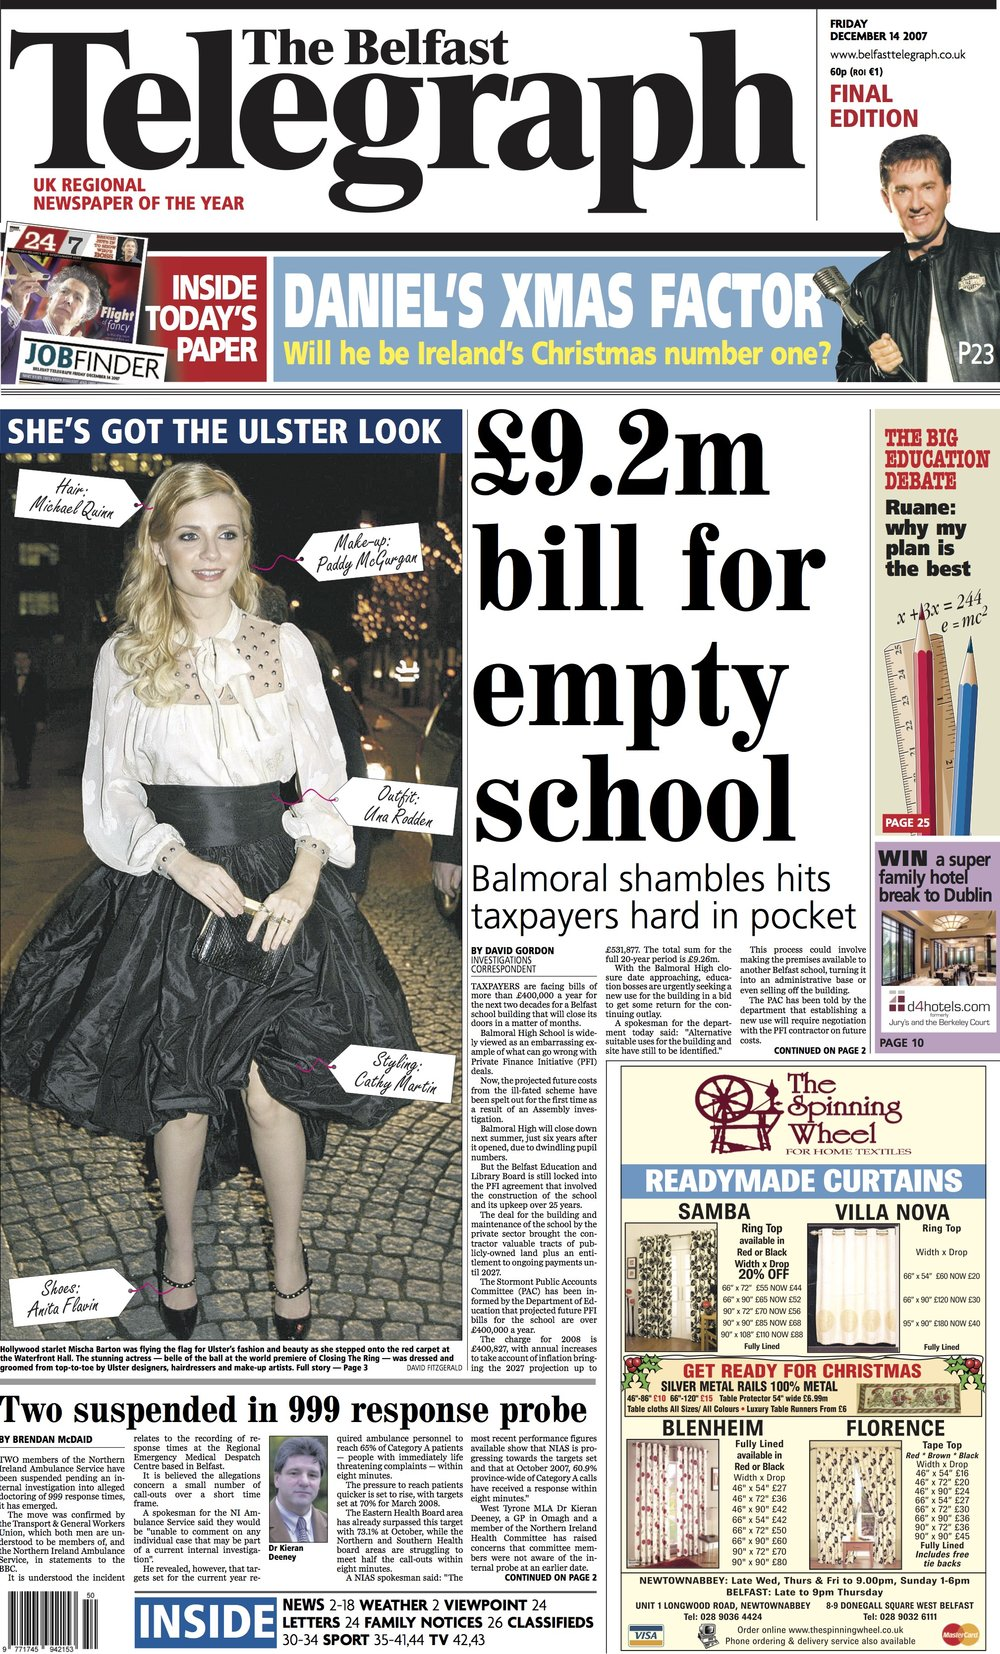 Belfast Telegraph Front Cover_December 14th.jpg